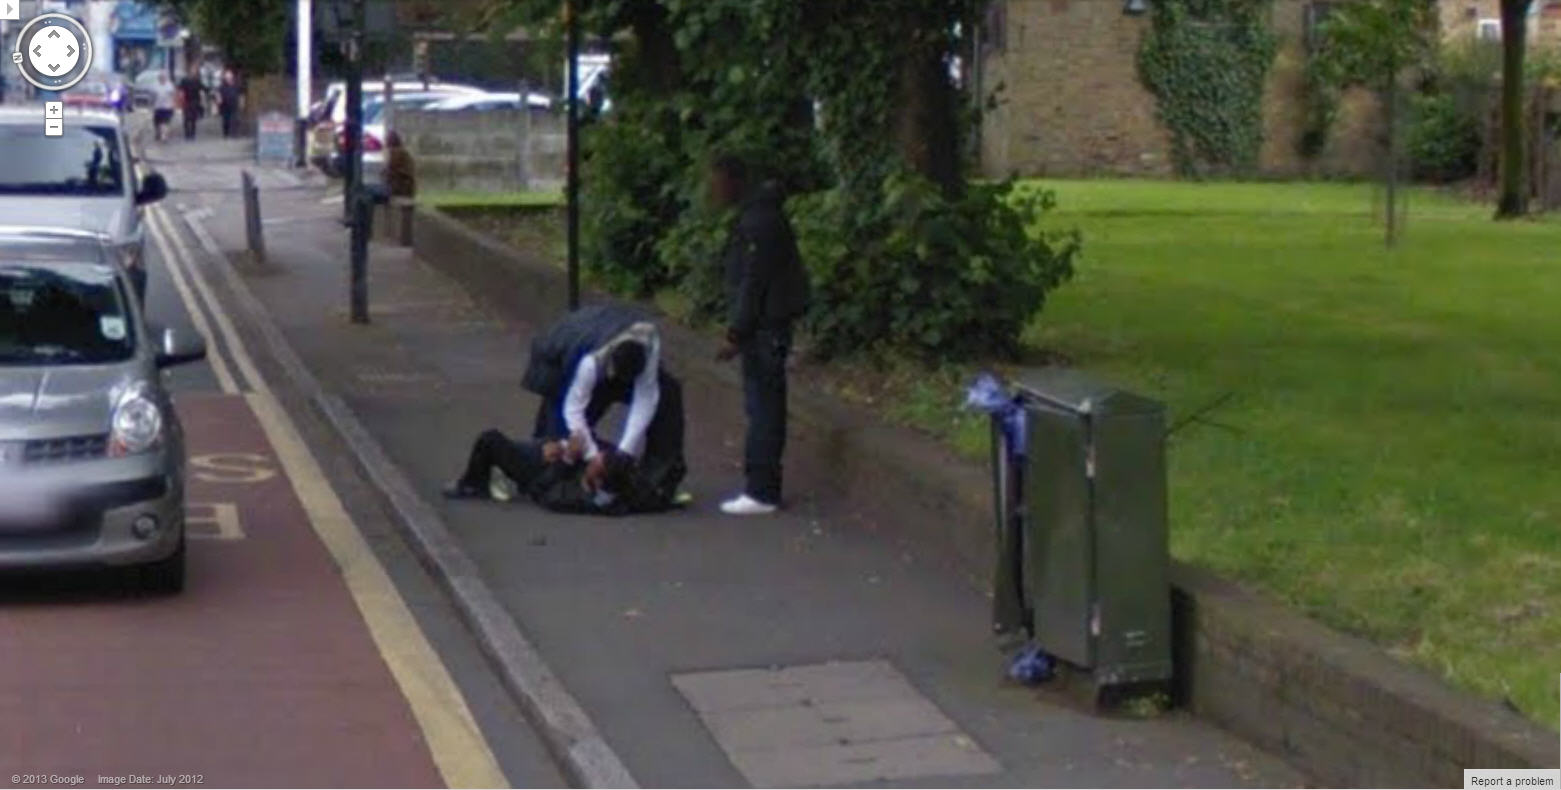 Uk Google Street View World Funny Street View Images From